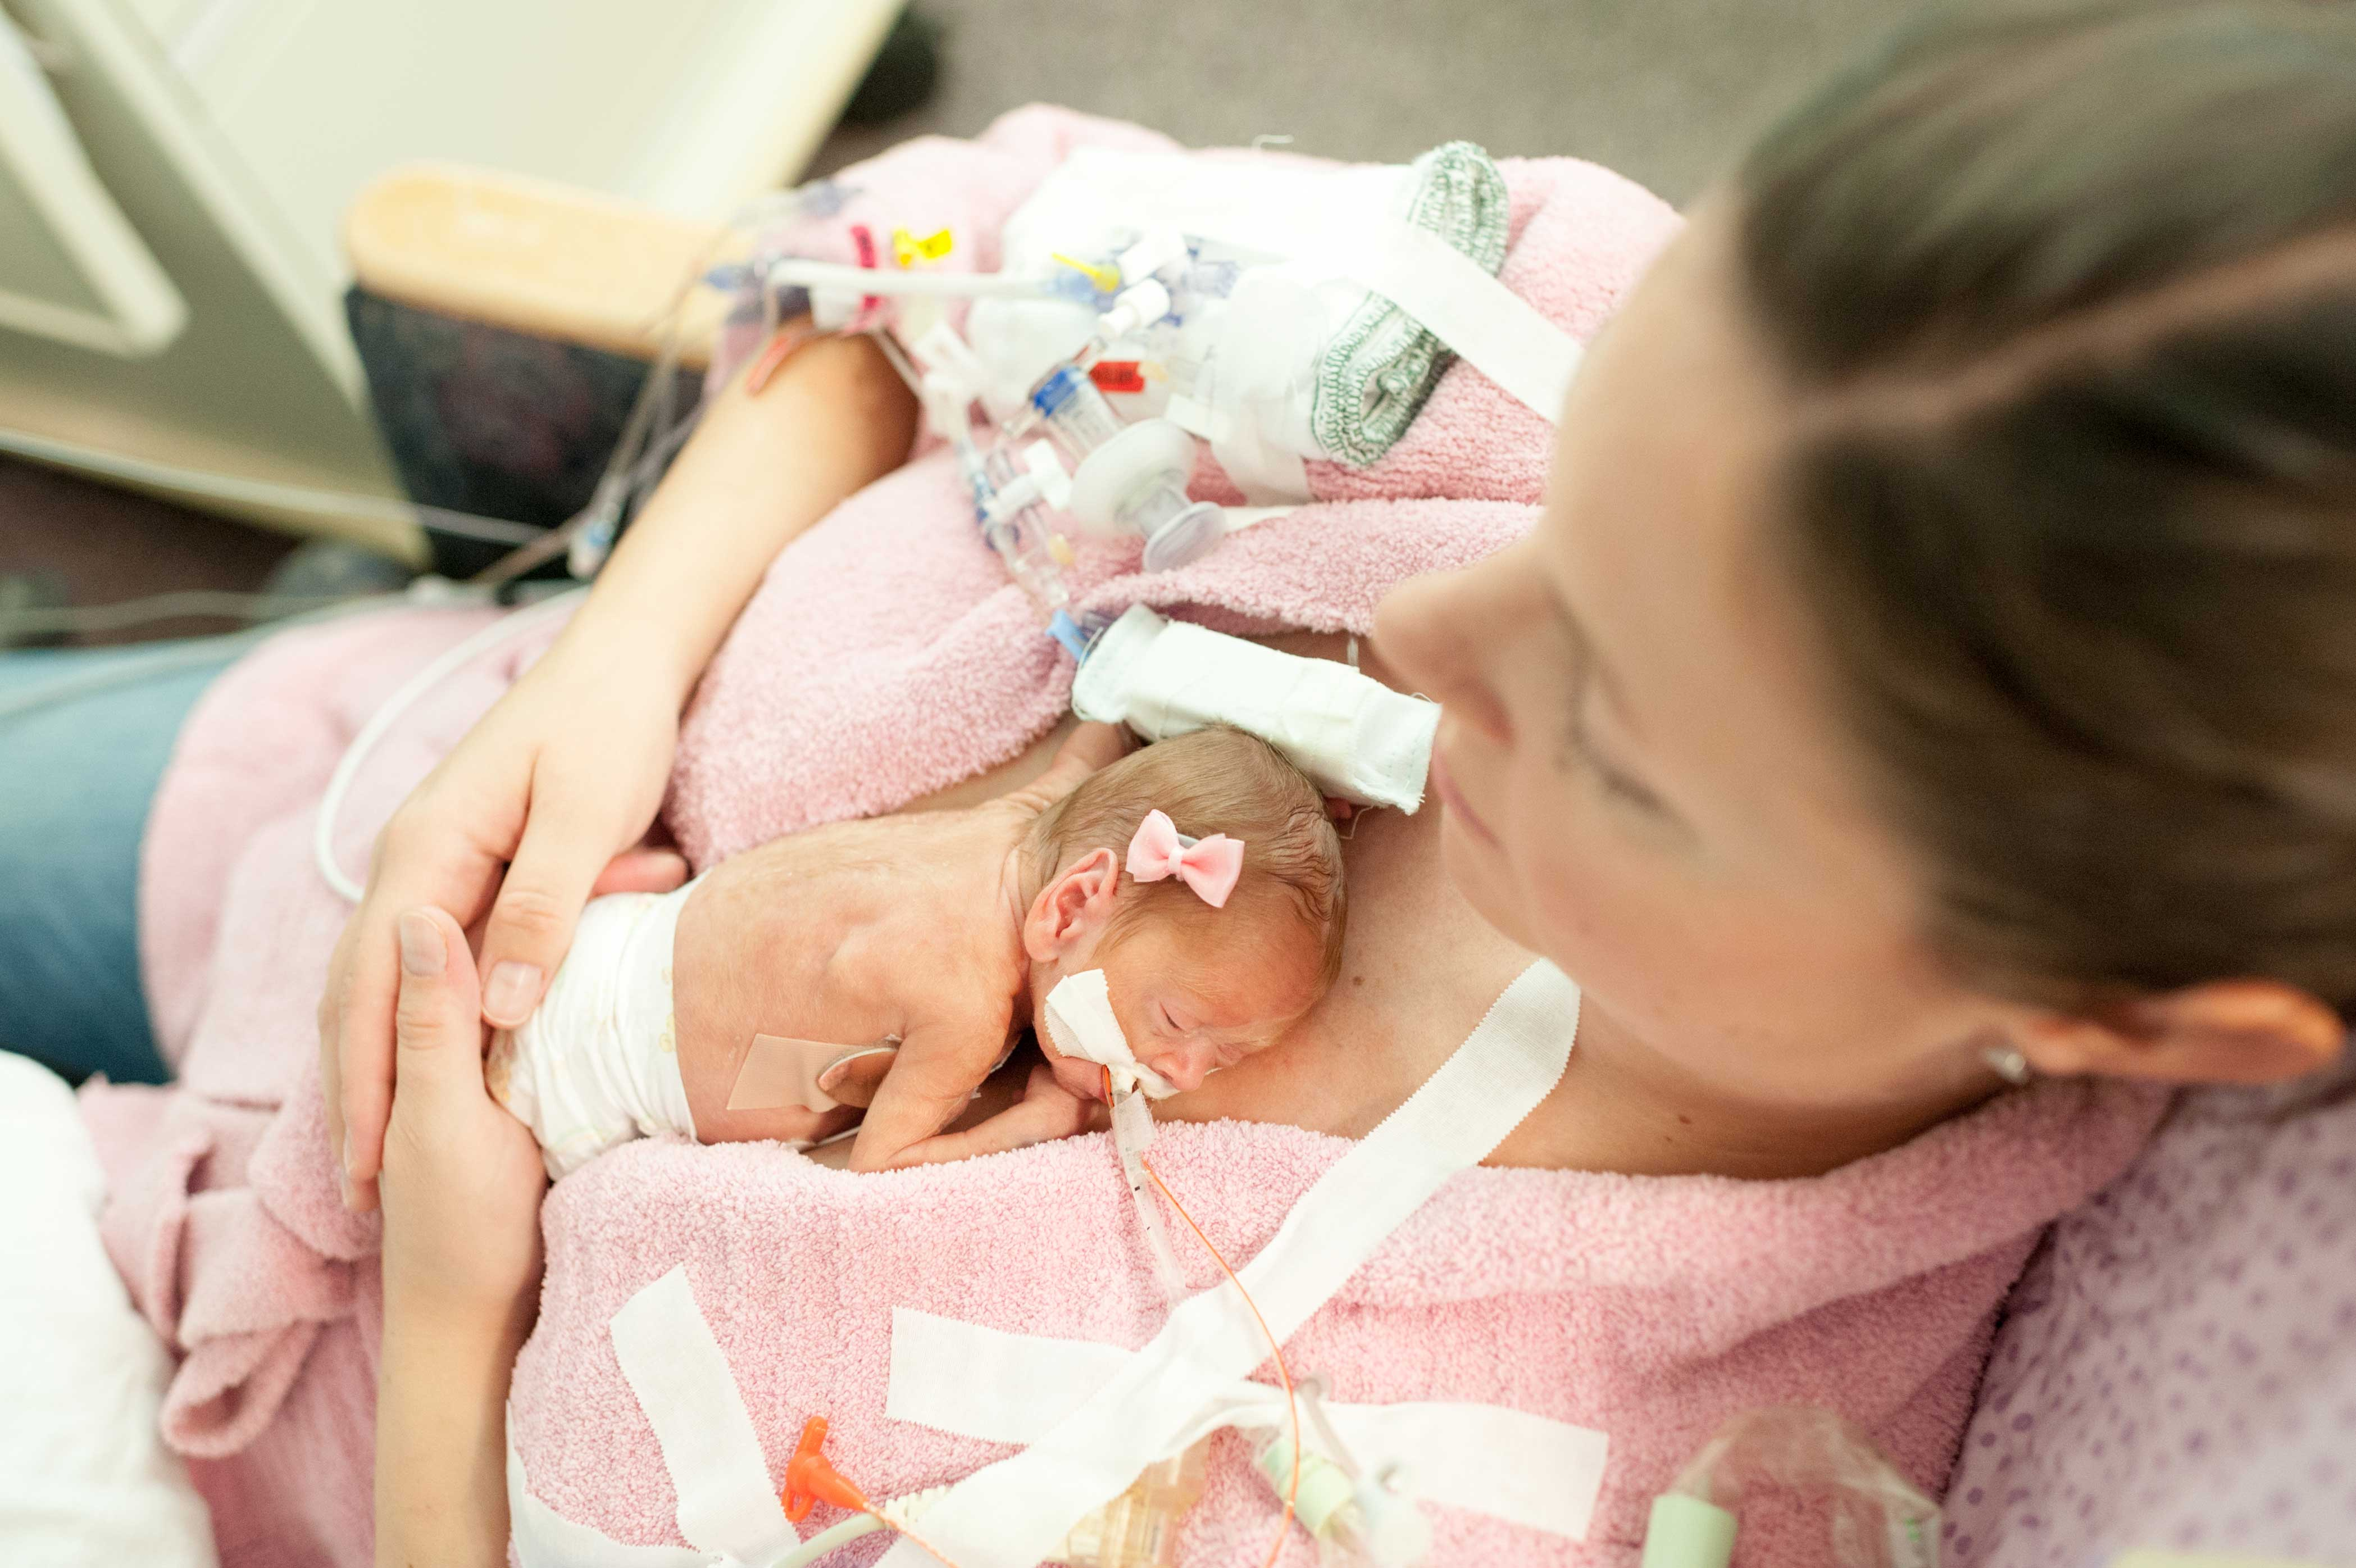 kangaroo care on a ventilator